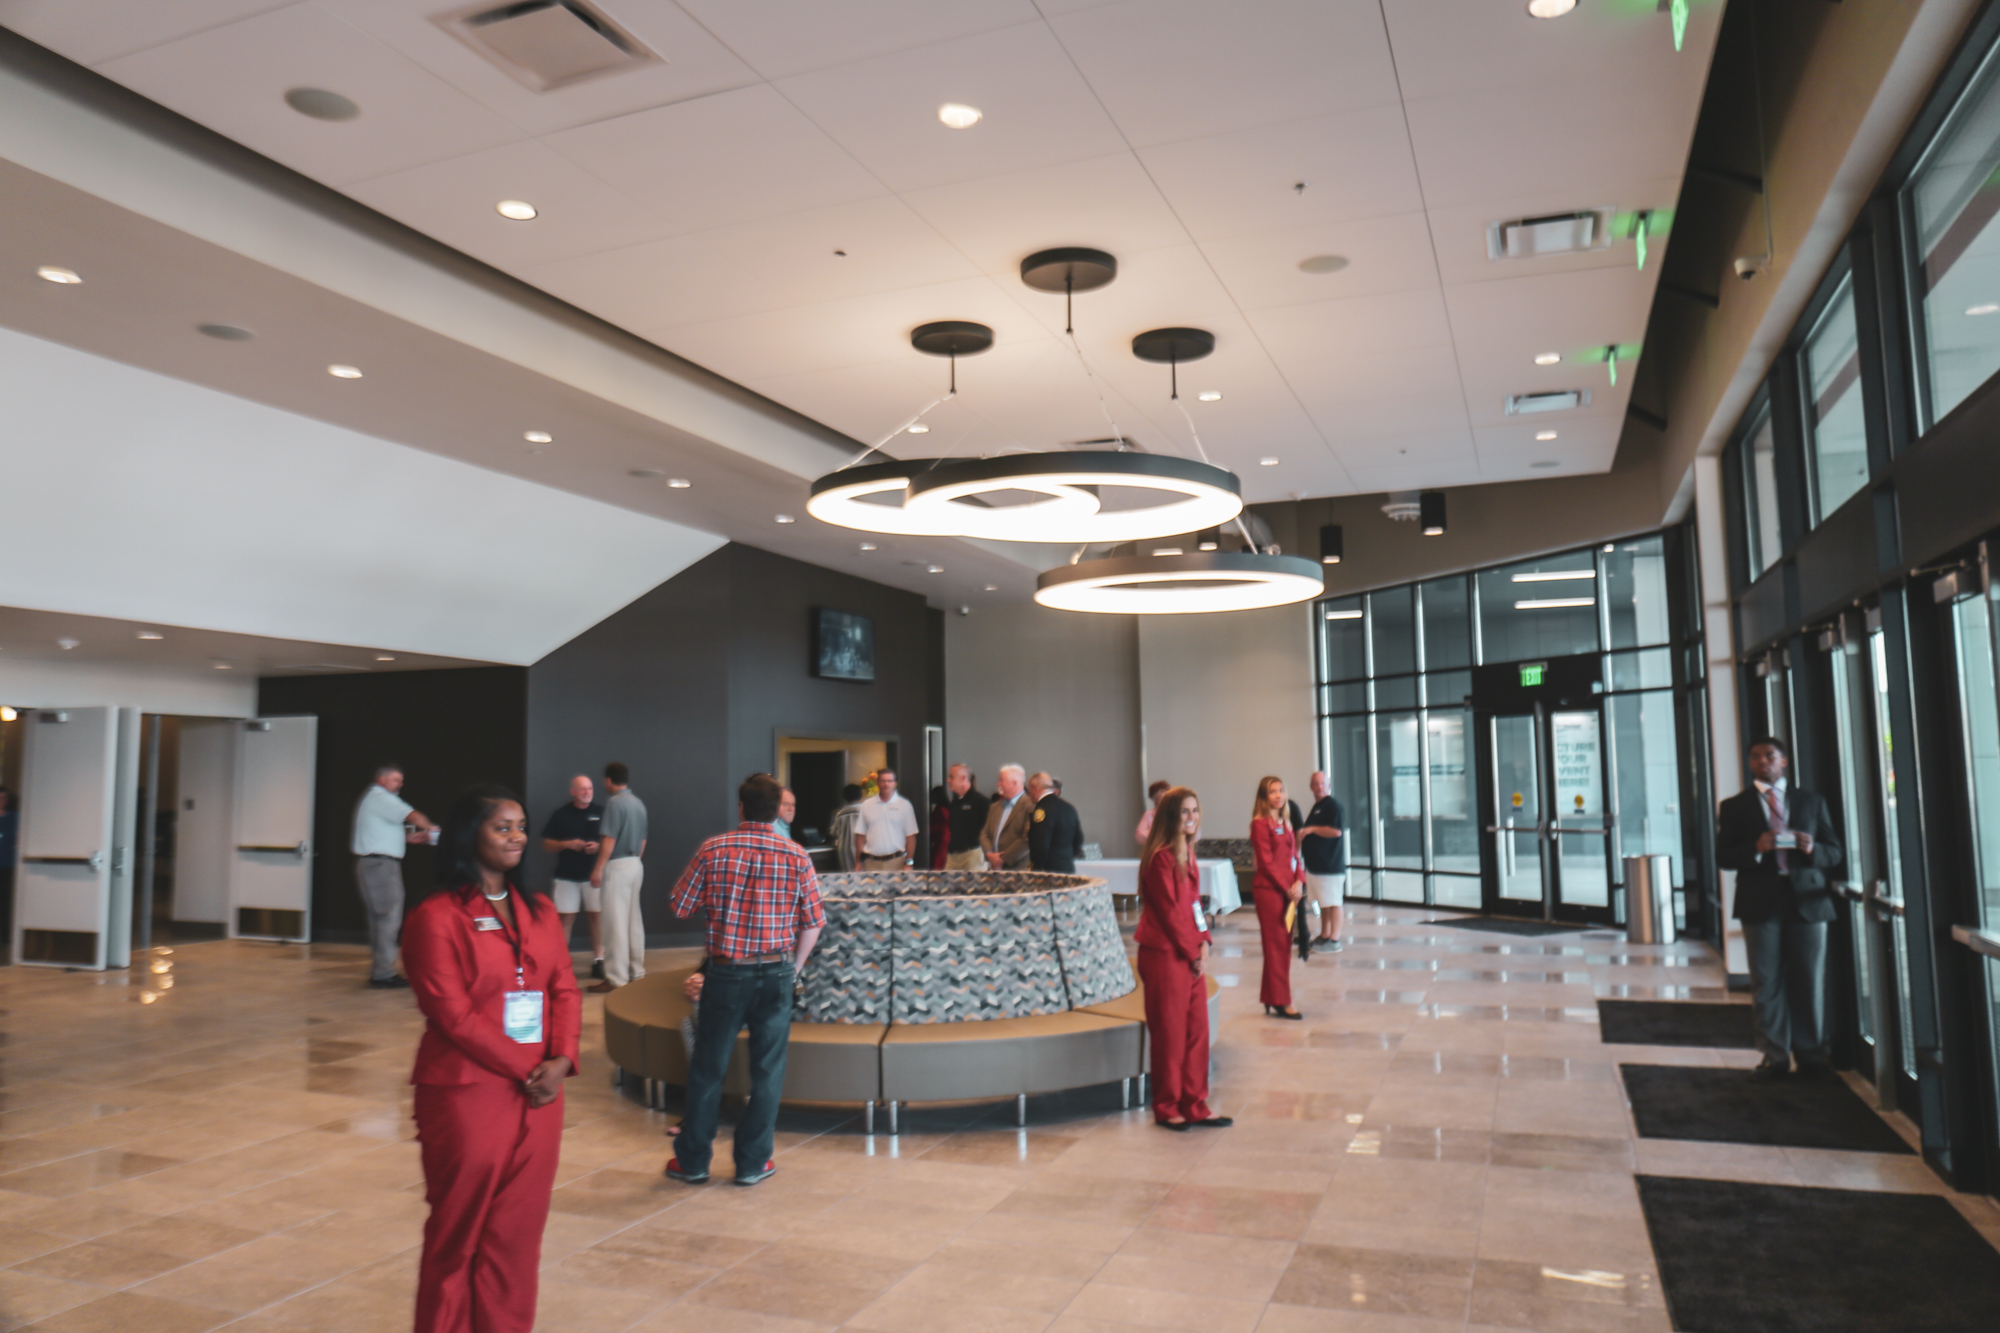 Lobby of Venue during open house reception